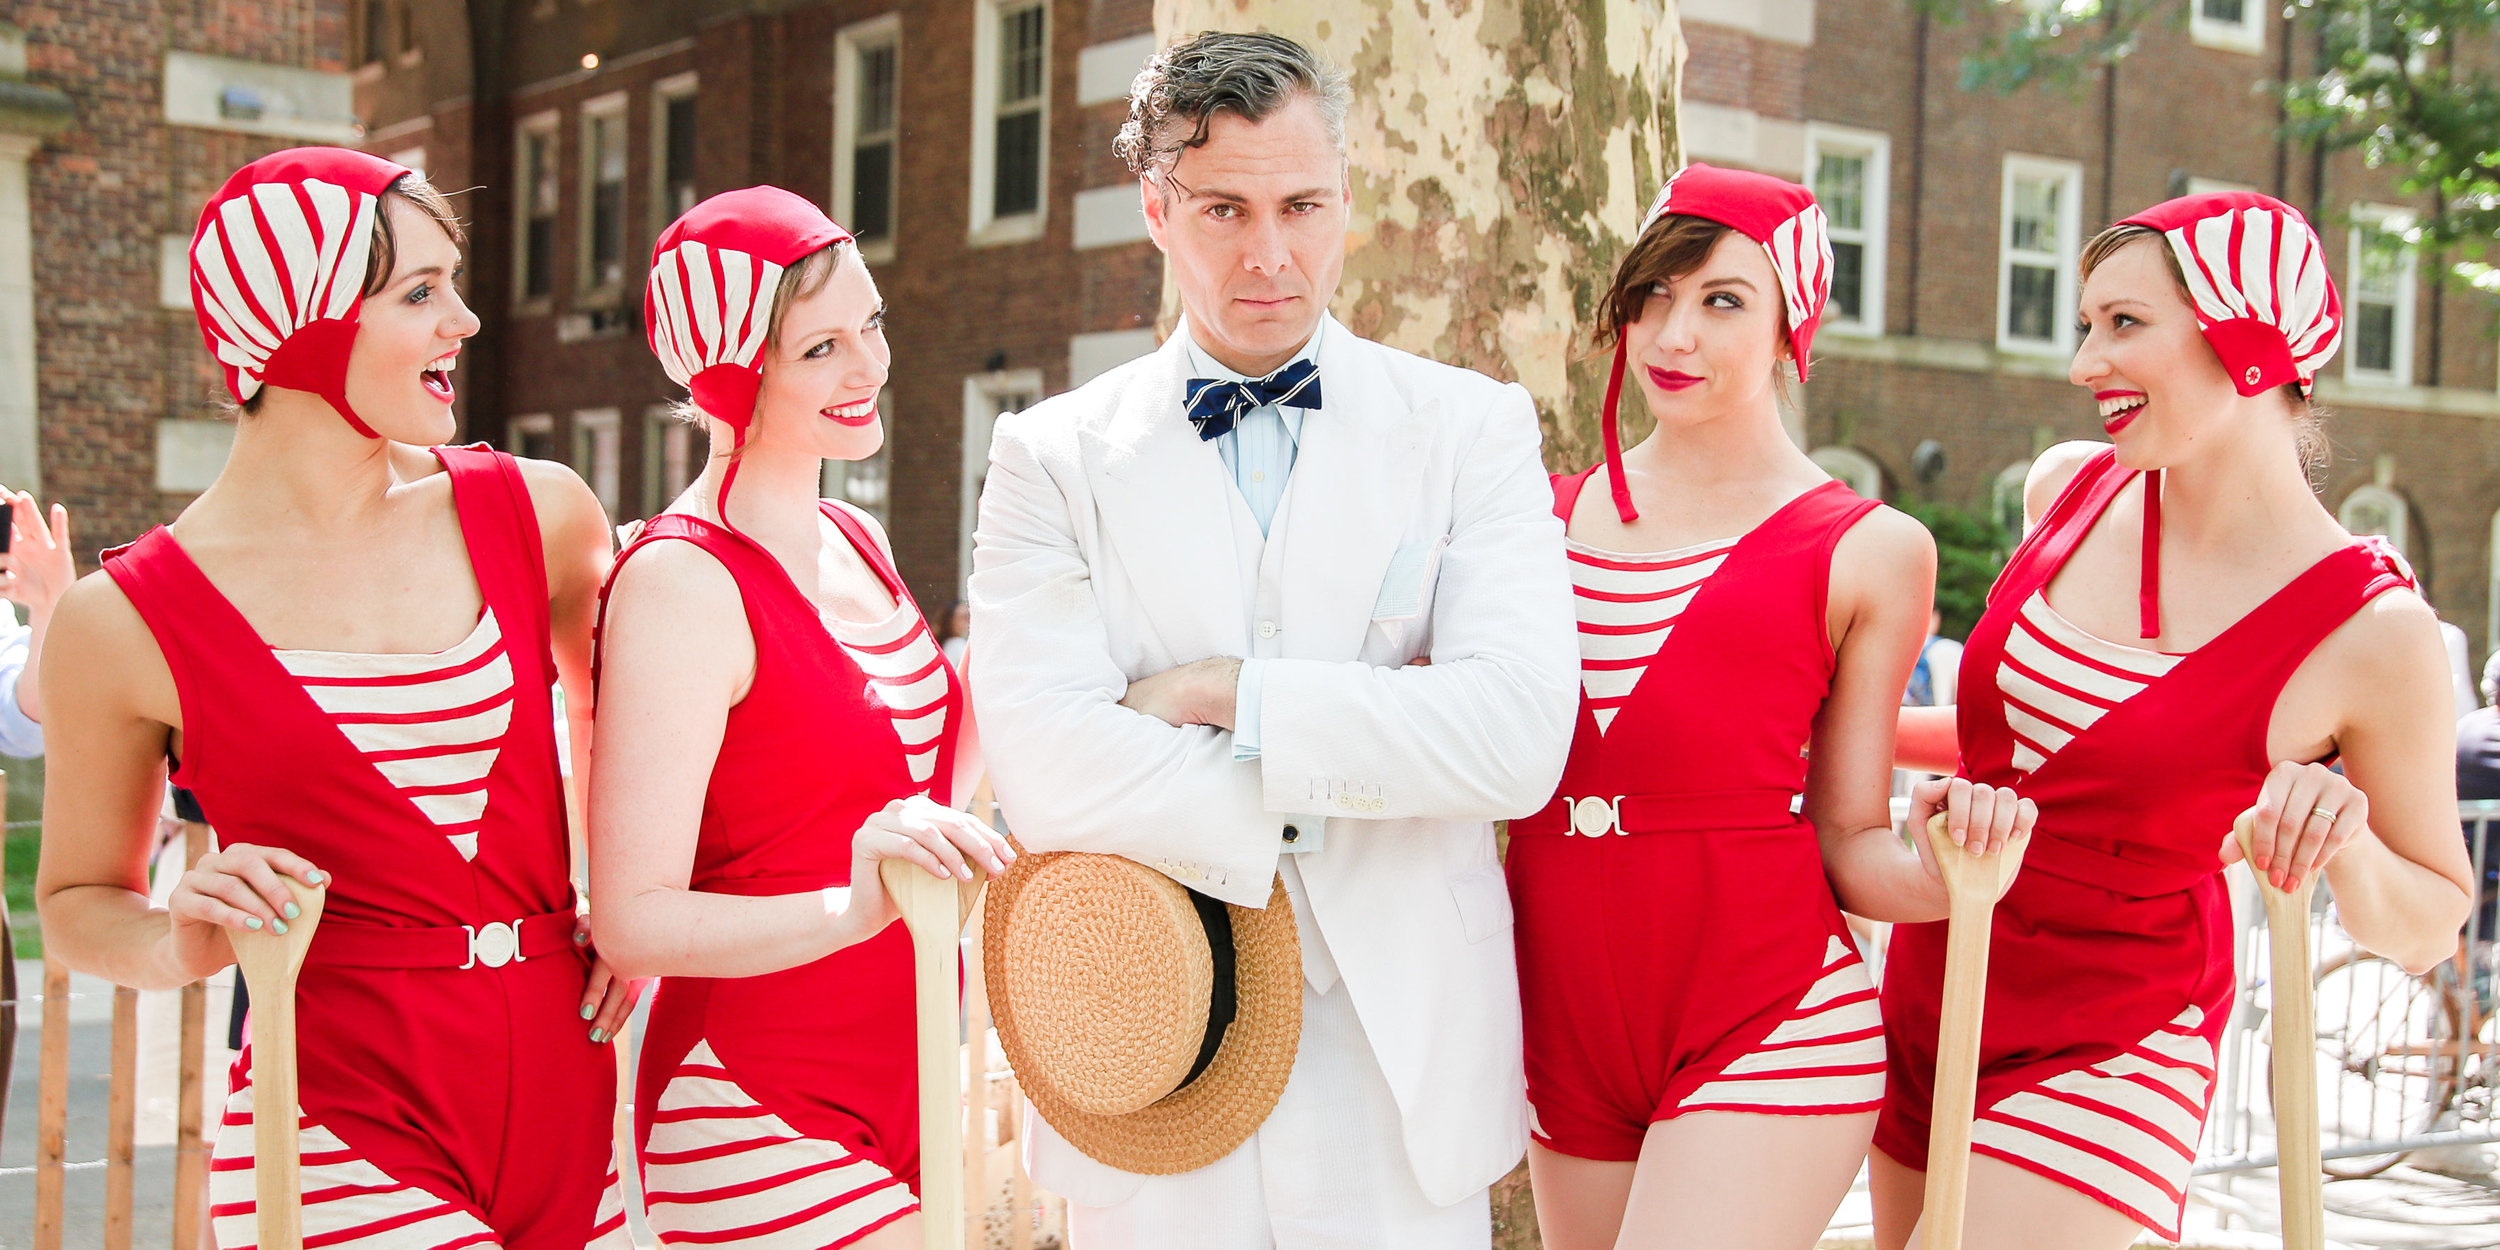 Jazz-Age-Lawn-Party-Updated-e1464032194110.jpg